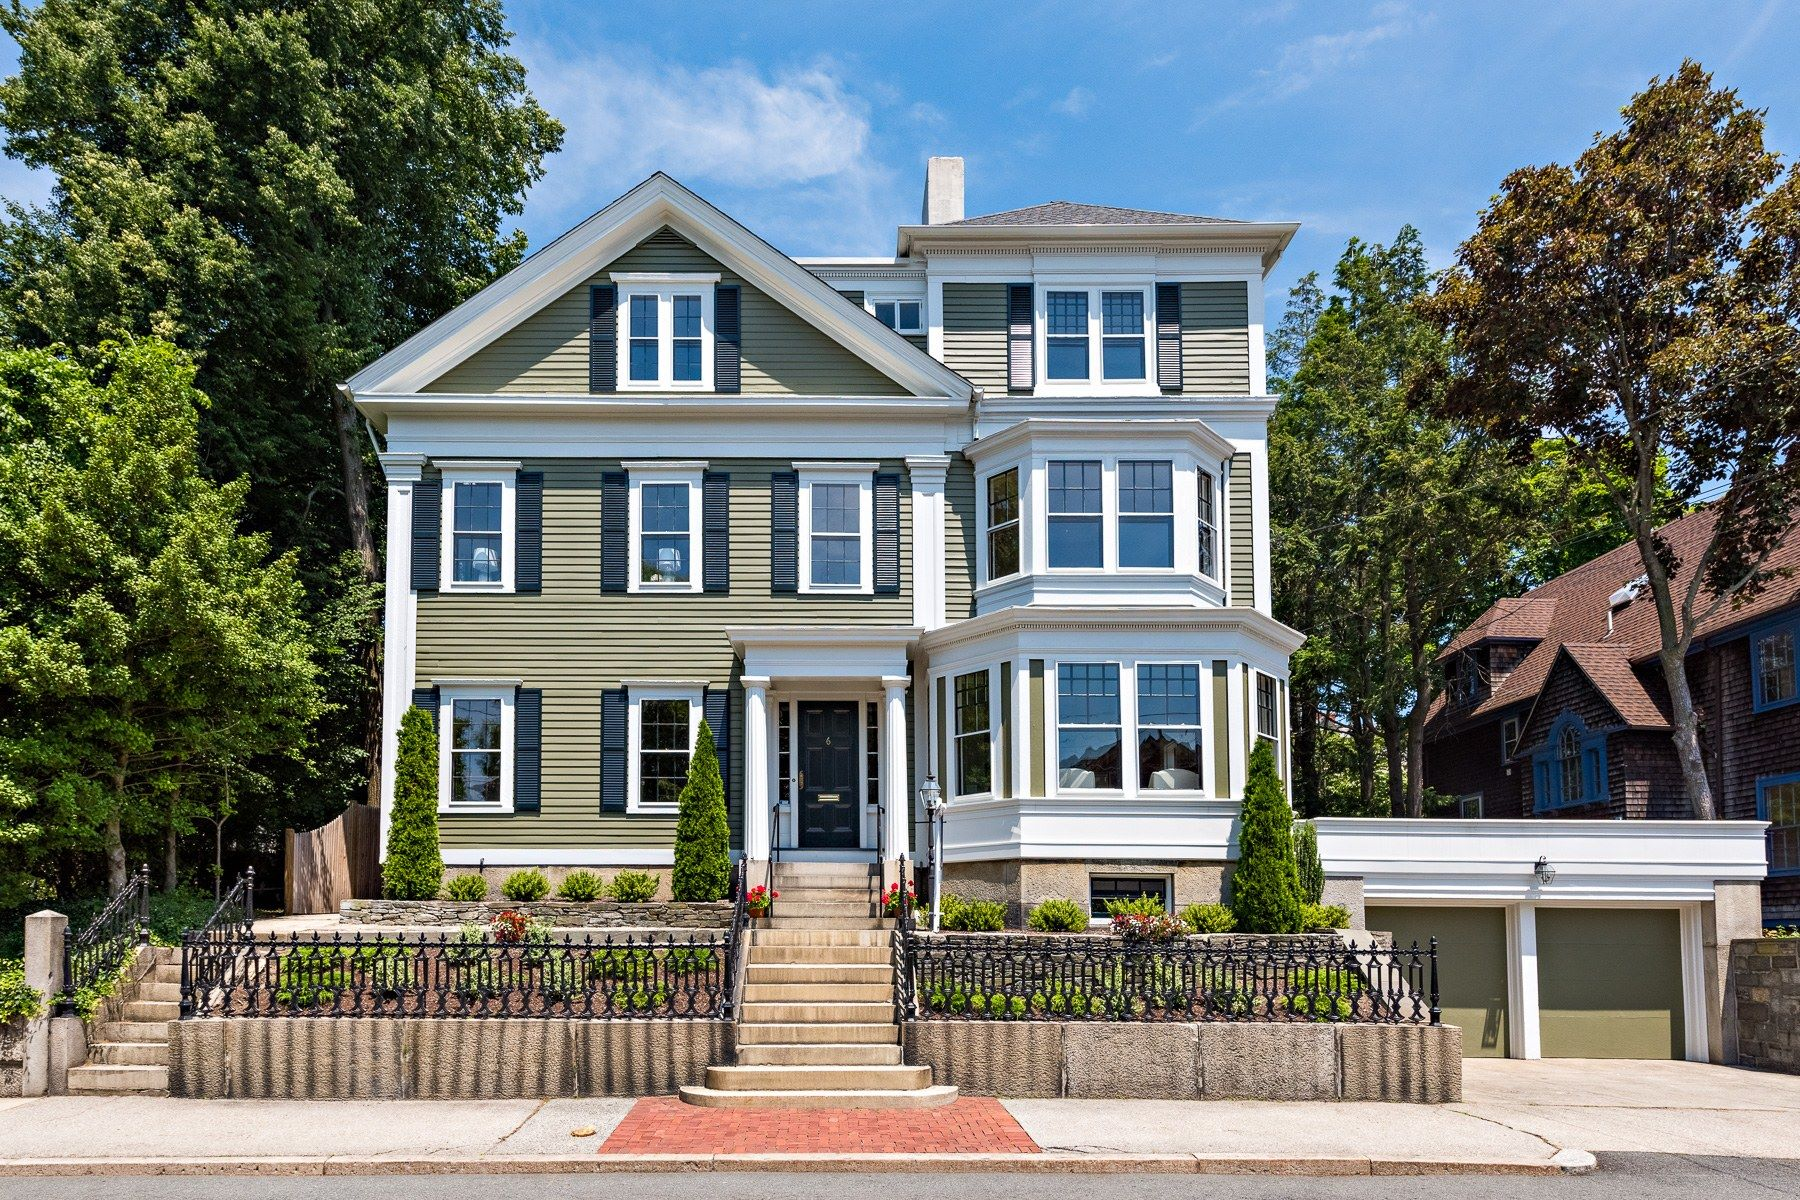 Single Family Homes for Sale at 6 Olive Street, East Side Of Providence, RI 6 Olive Street Providence, Rhode Island 02906 United States